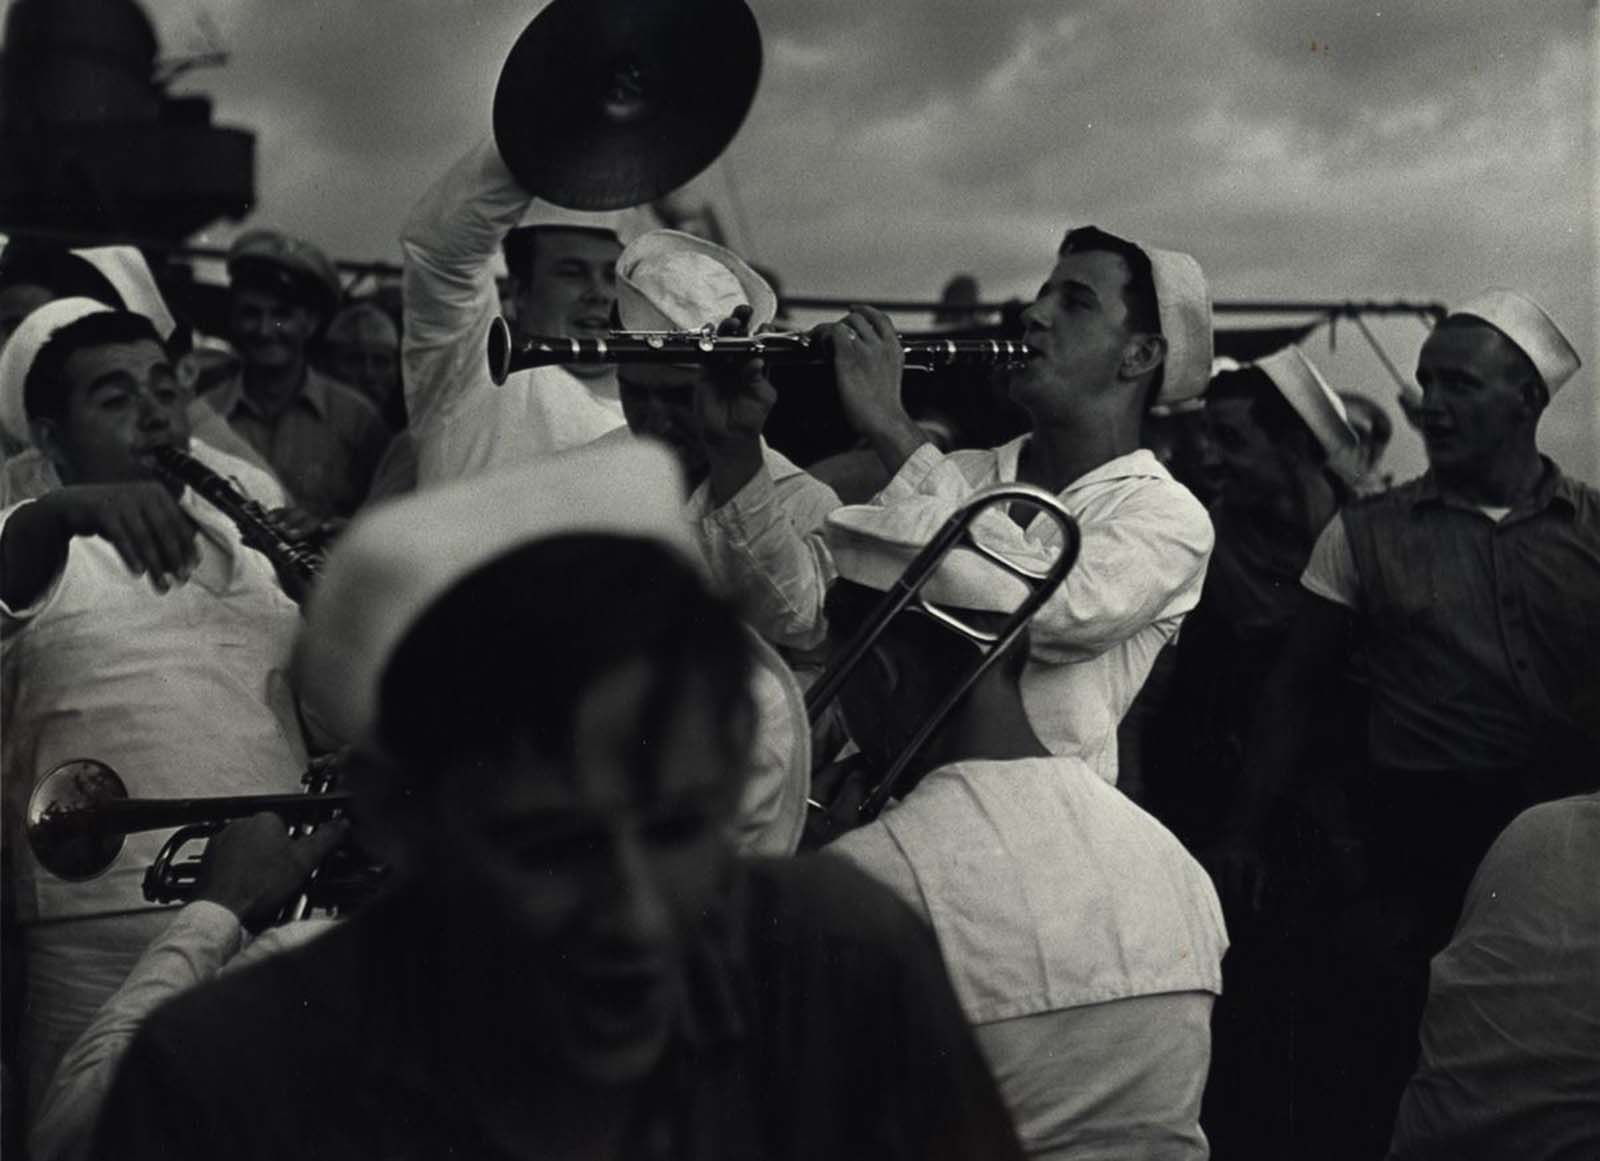 Sailors Playing Instruments, c. 1943.